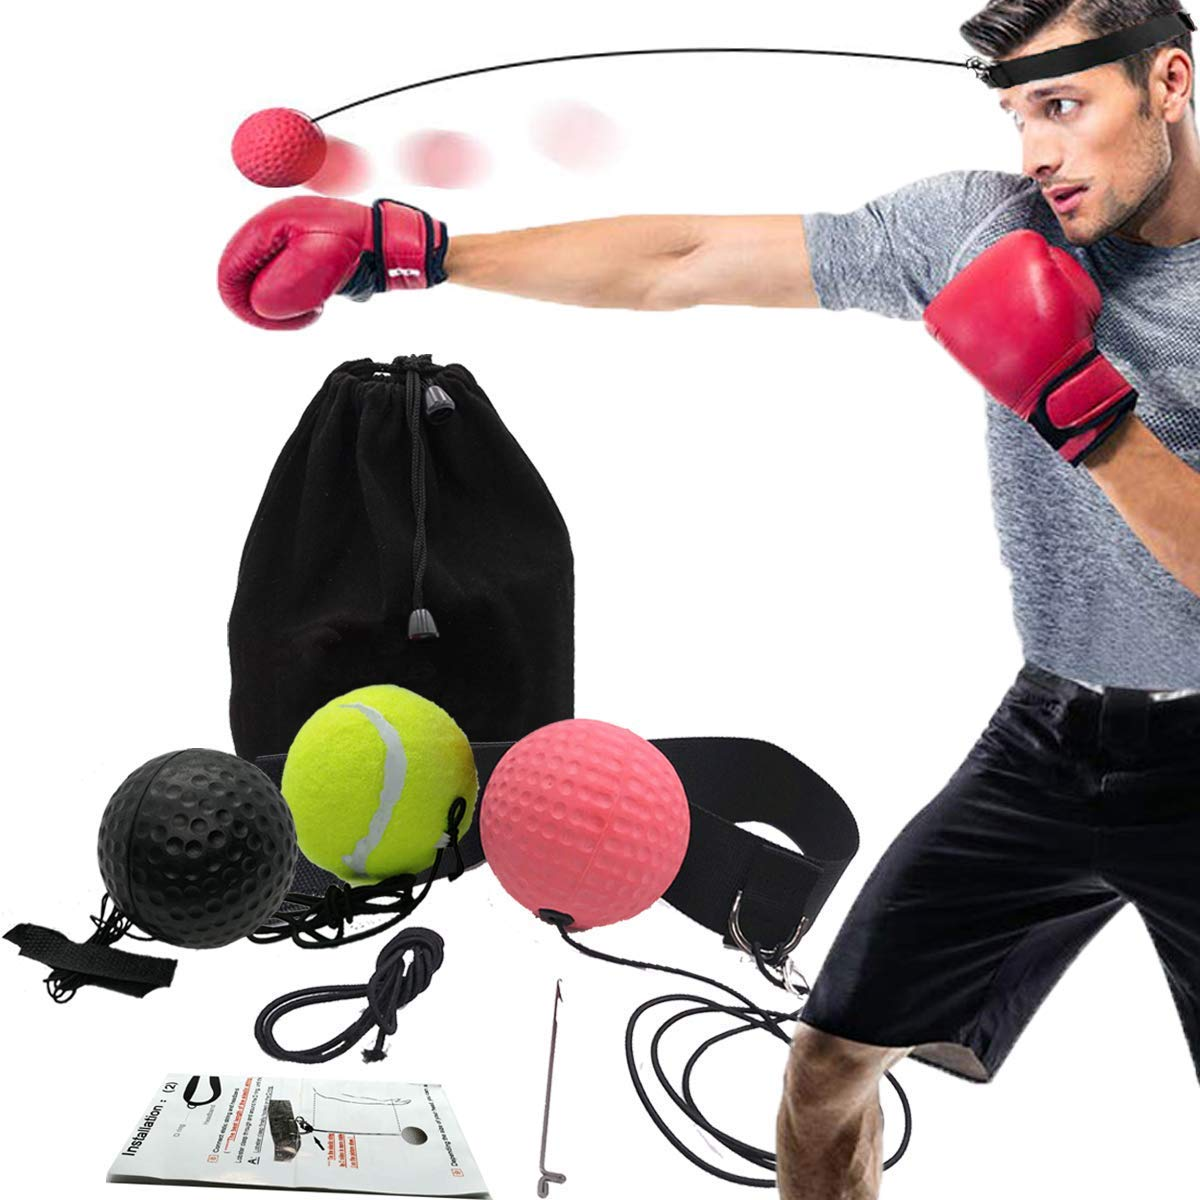 Reflex Fightball Fighting Decompression Speed Fitness Punching Boxing Ball With Headband BuguCat Boxing Training Ball Speedball Training Machine At Home And Outdoor For Boxing Training